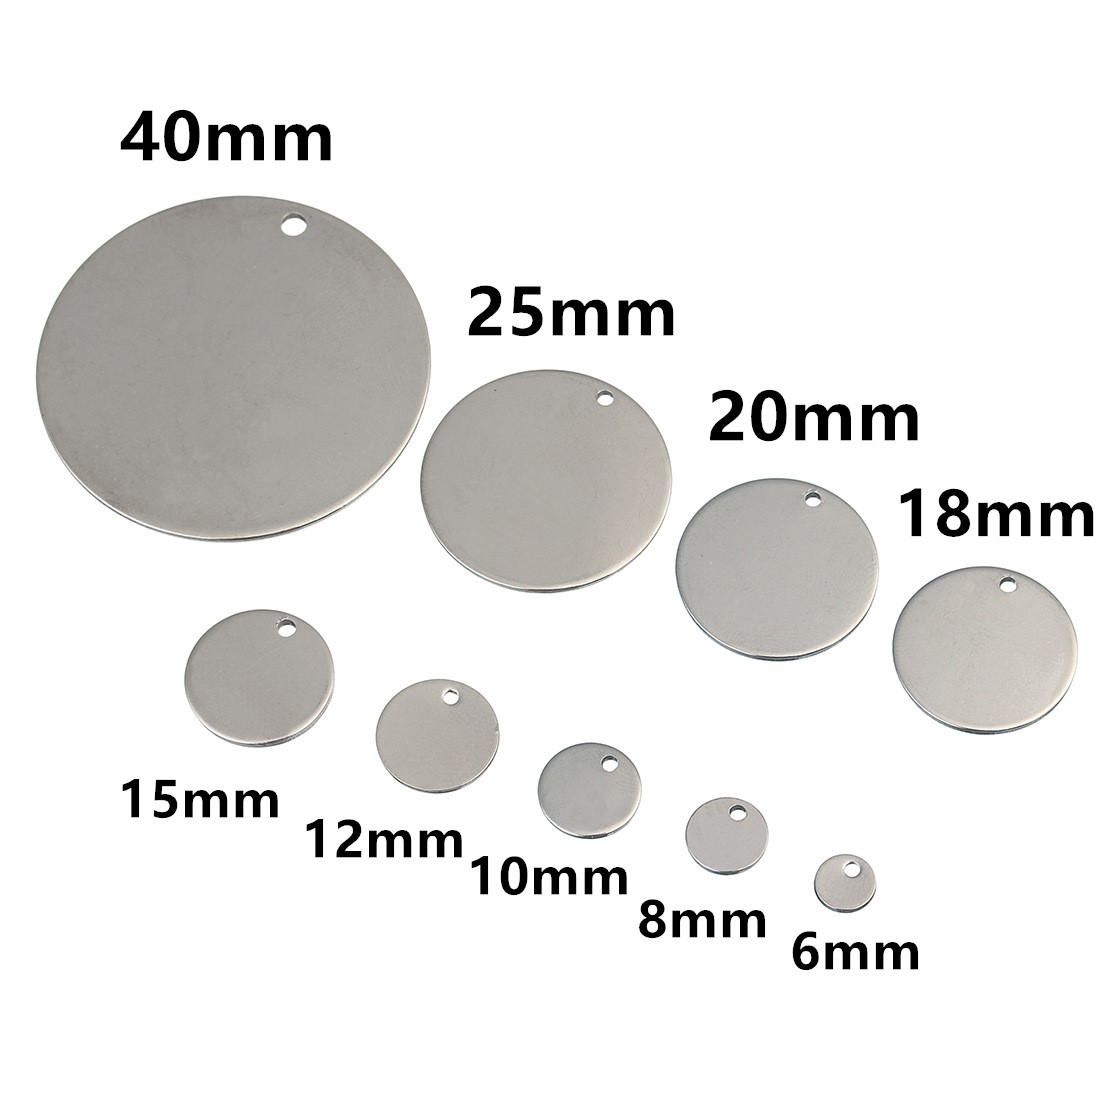 MADE FOR YOU Charm Tags OVAL Nickel 12mm